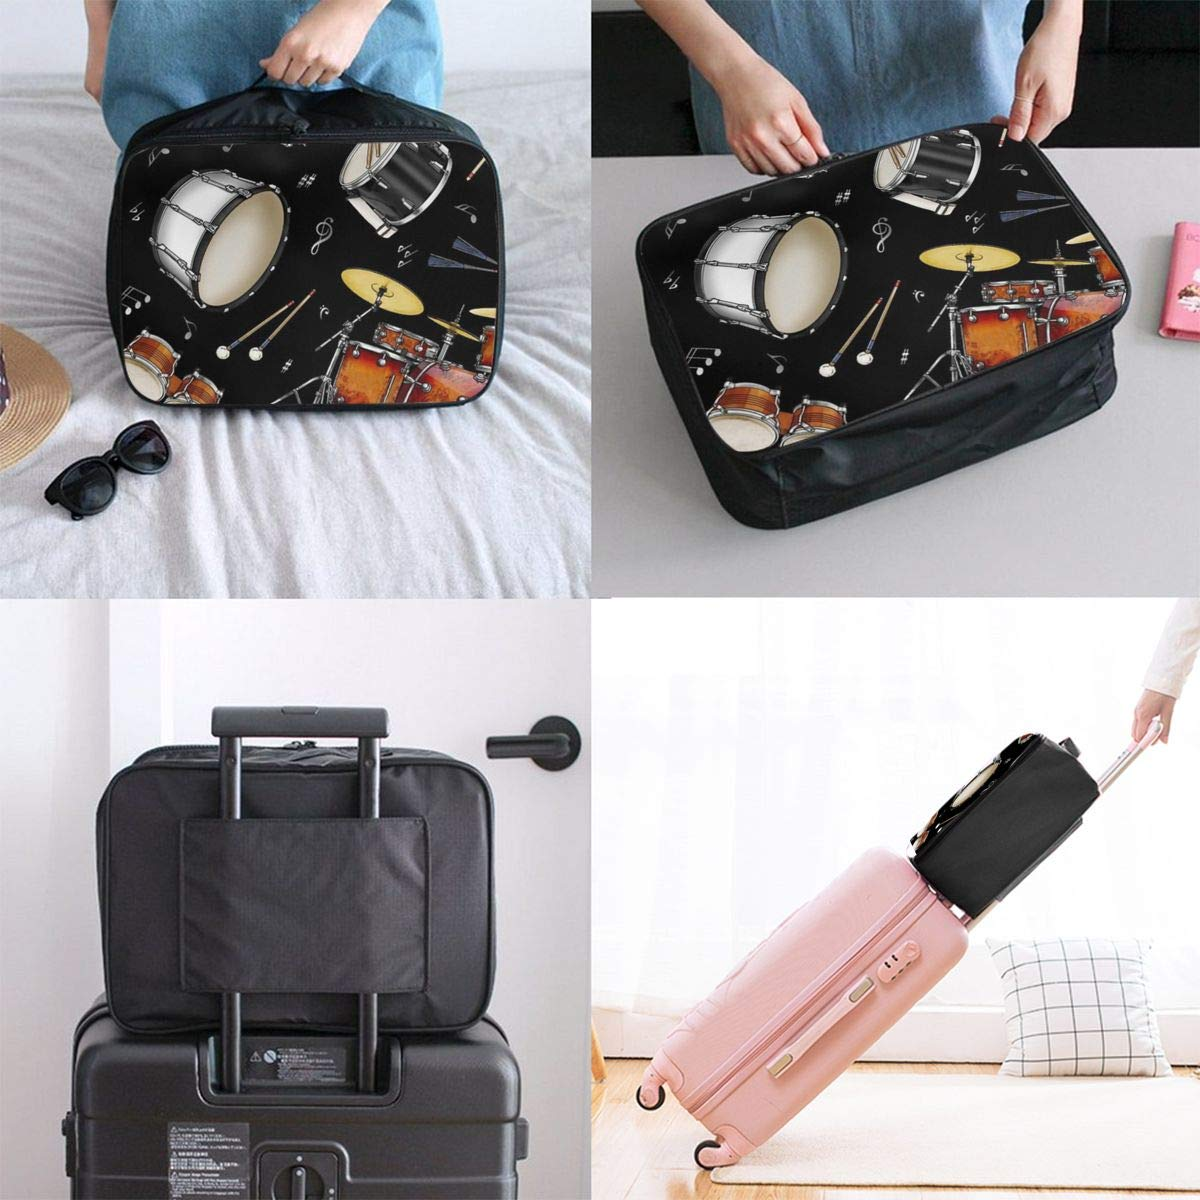 Hand Bag In Trolley Handle Vacation Travel Duffle Bag Mushroom Style Weekender Bag Water Repellent Foldable Nylon Luggage Duffel Bag For Sports Gym